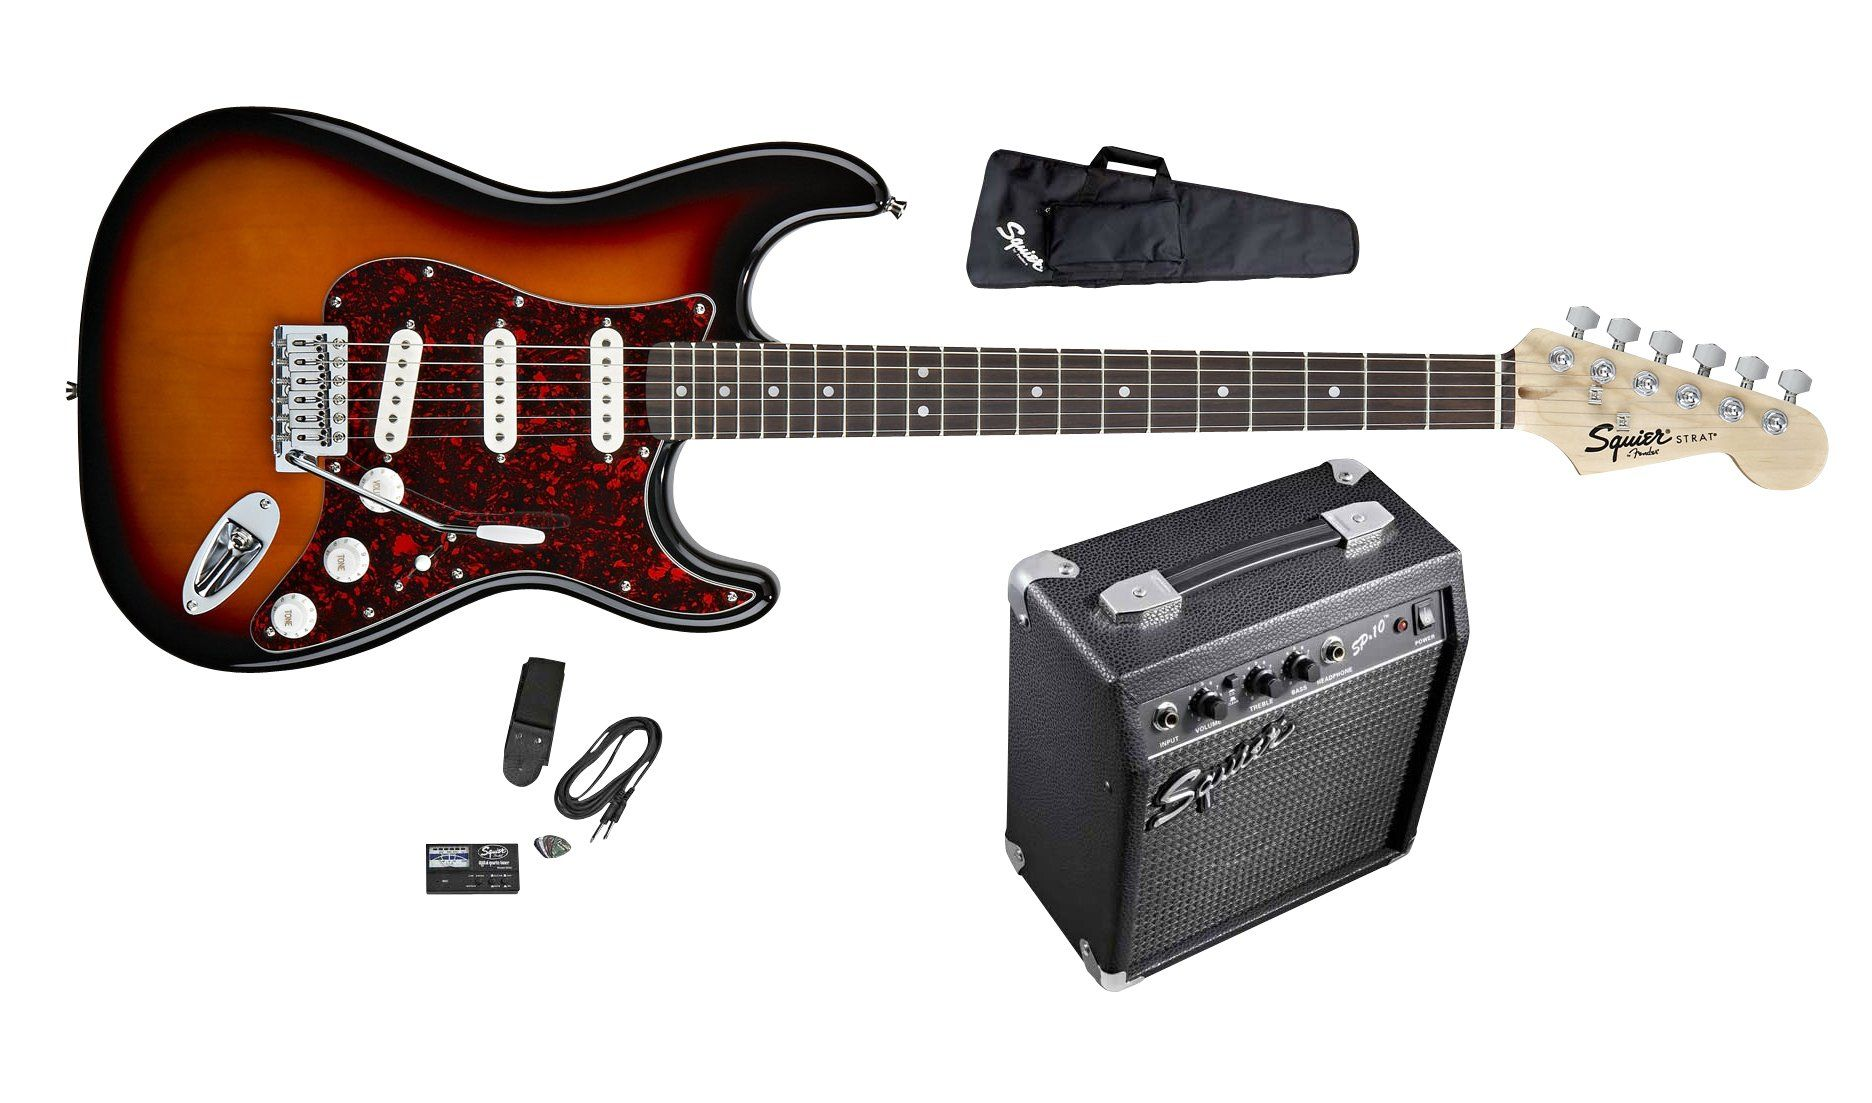 Squier SE Special Strat Electric Guitar Package Equipment For Sale, Dj  Equipment, Playing Guitar